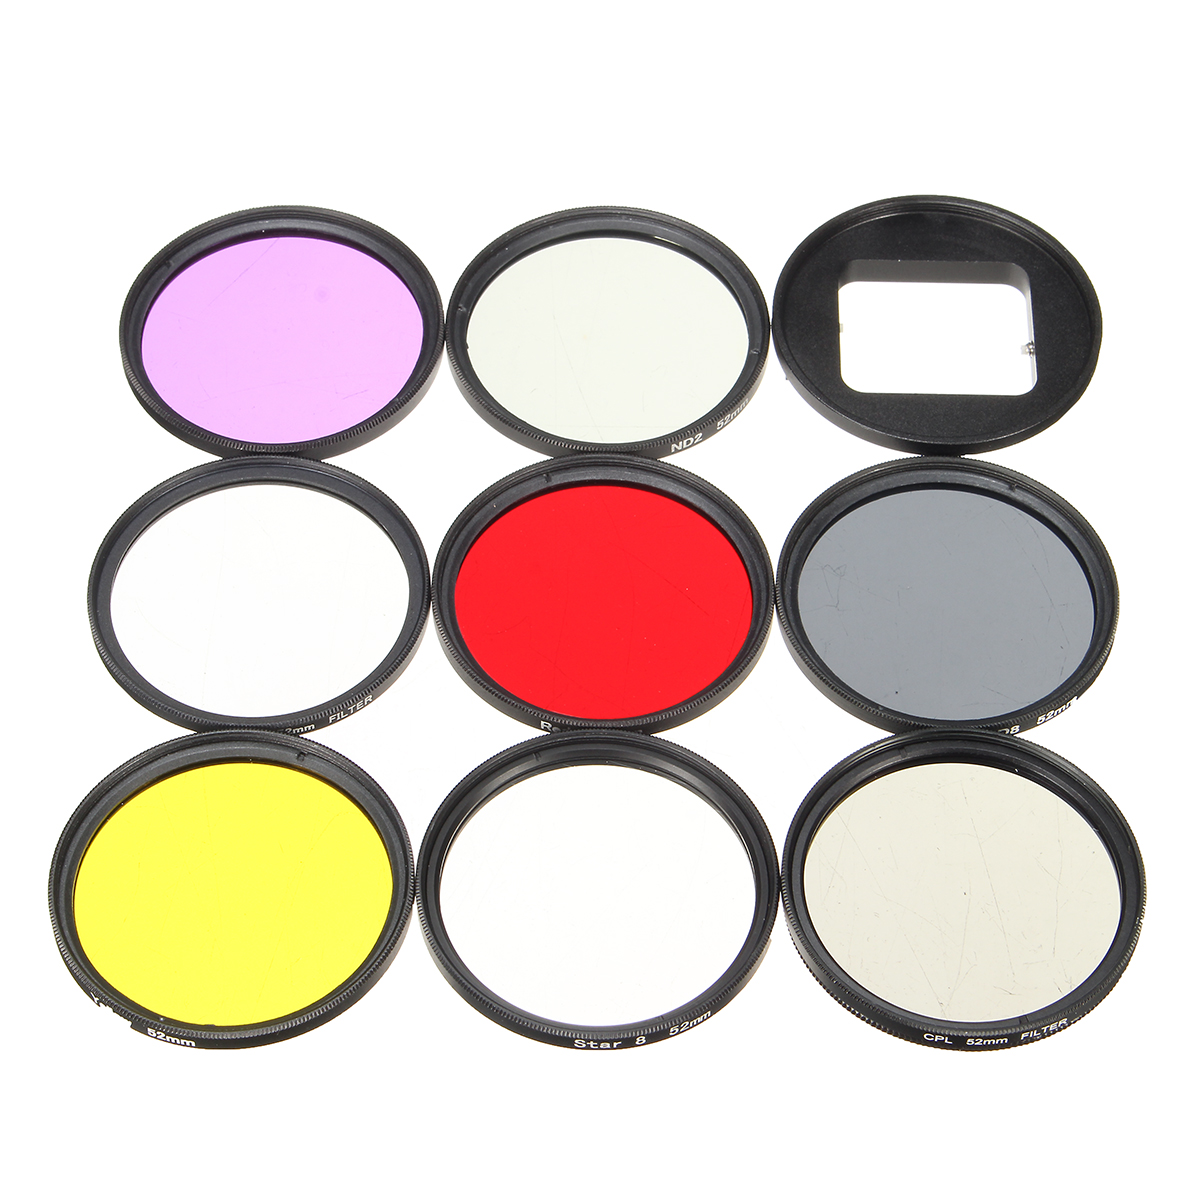 11 in 1 52mm UV CPL ND Filter with Adapter Lens Cap Hex Wrench for Gopro Hero 5